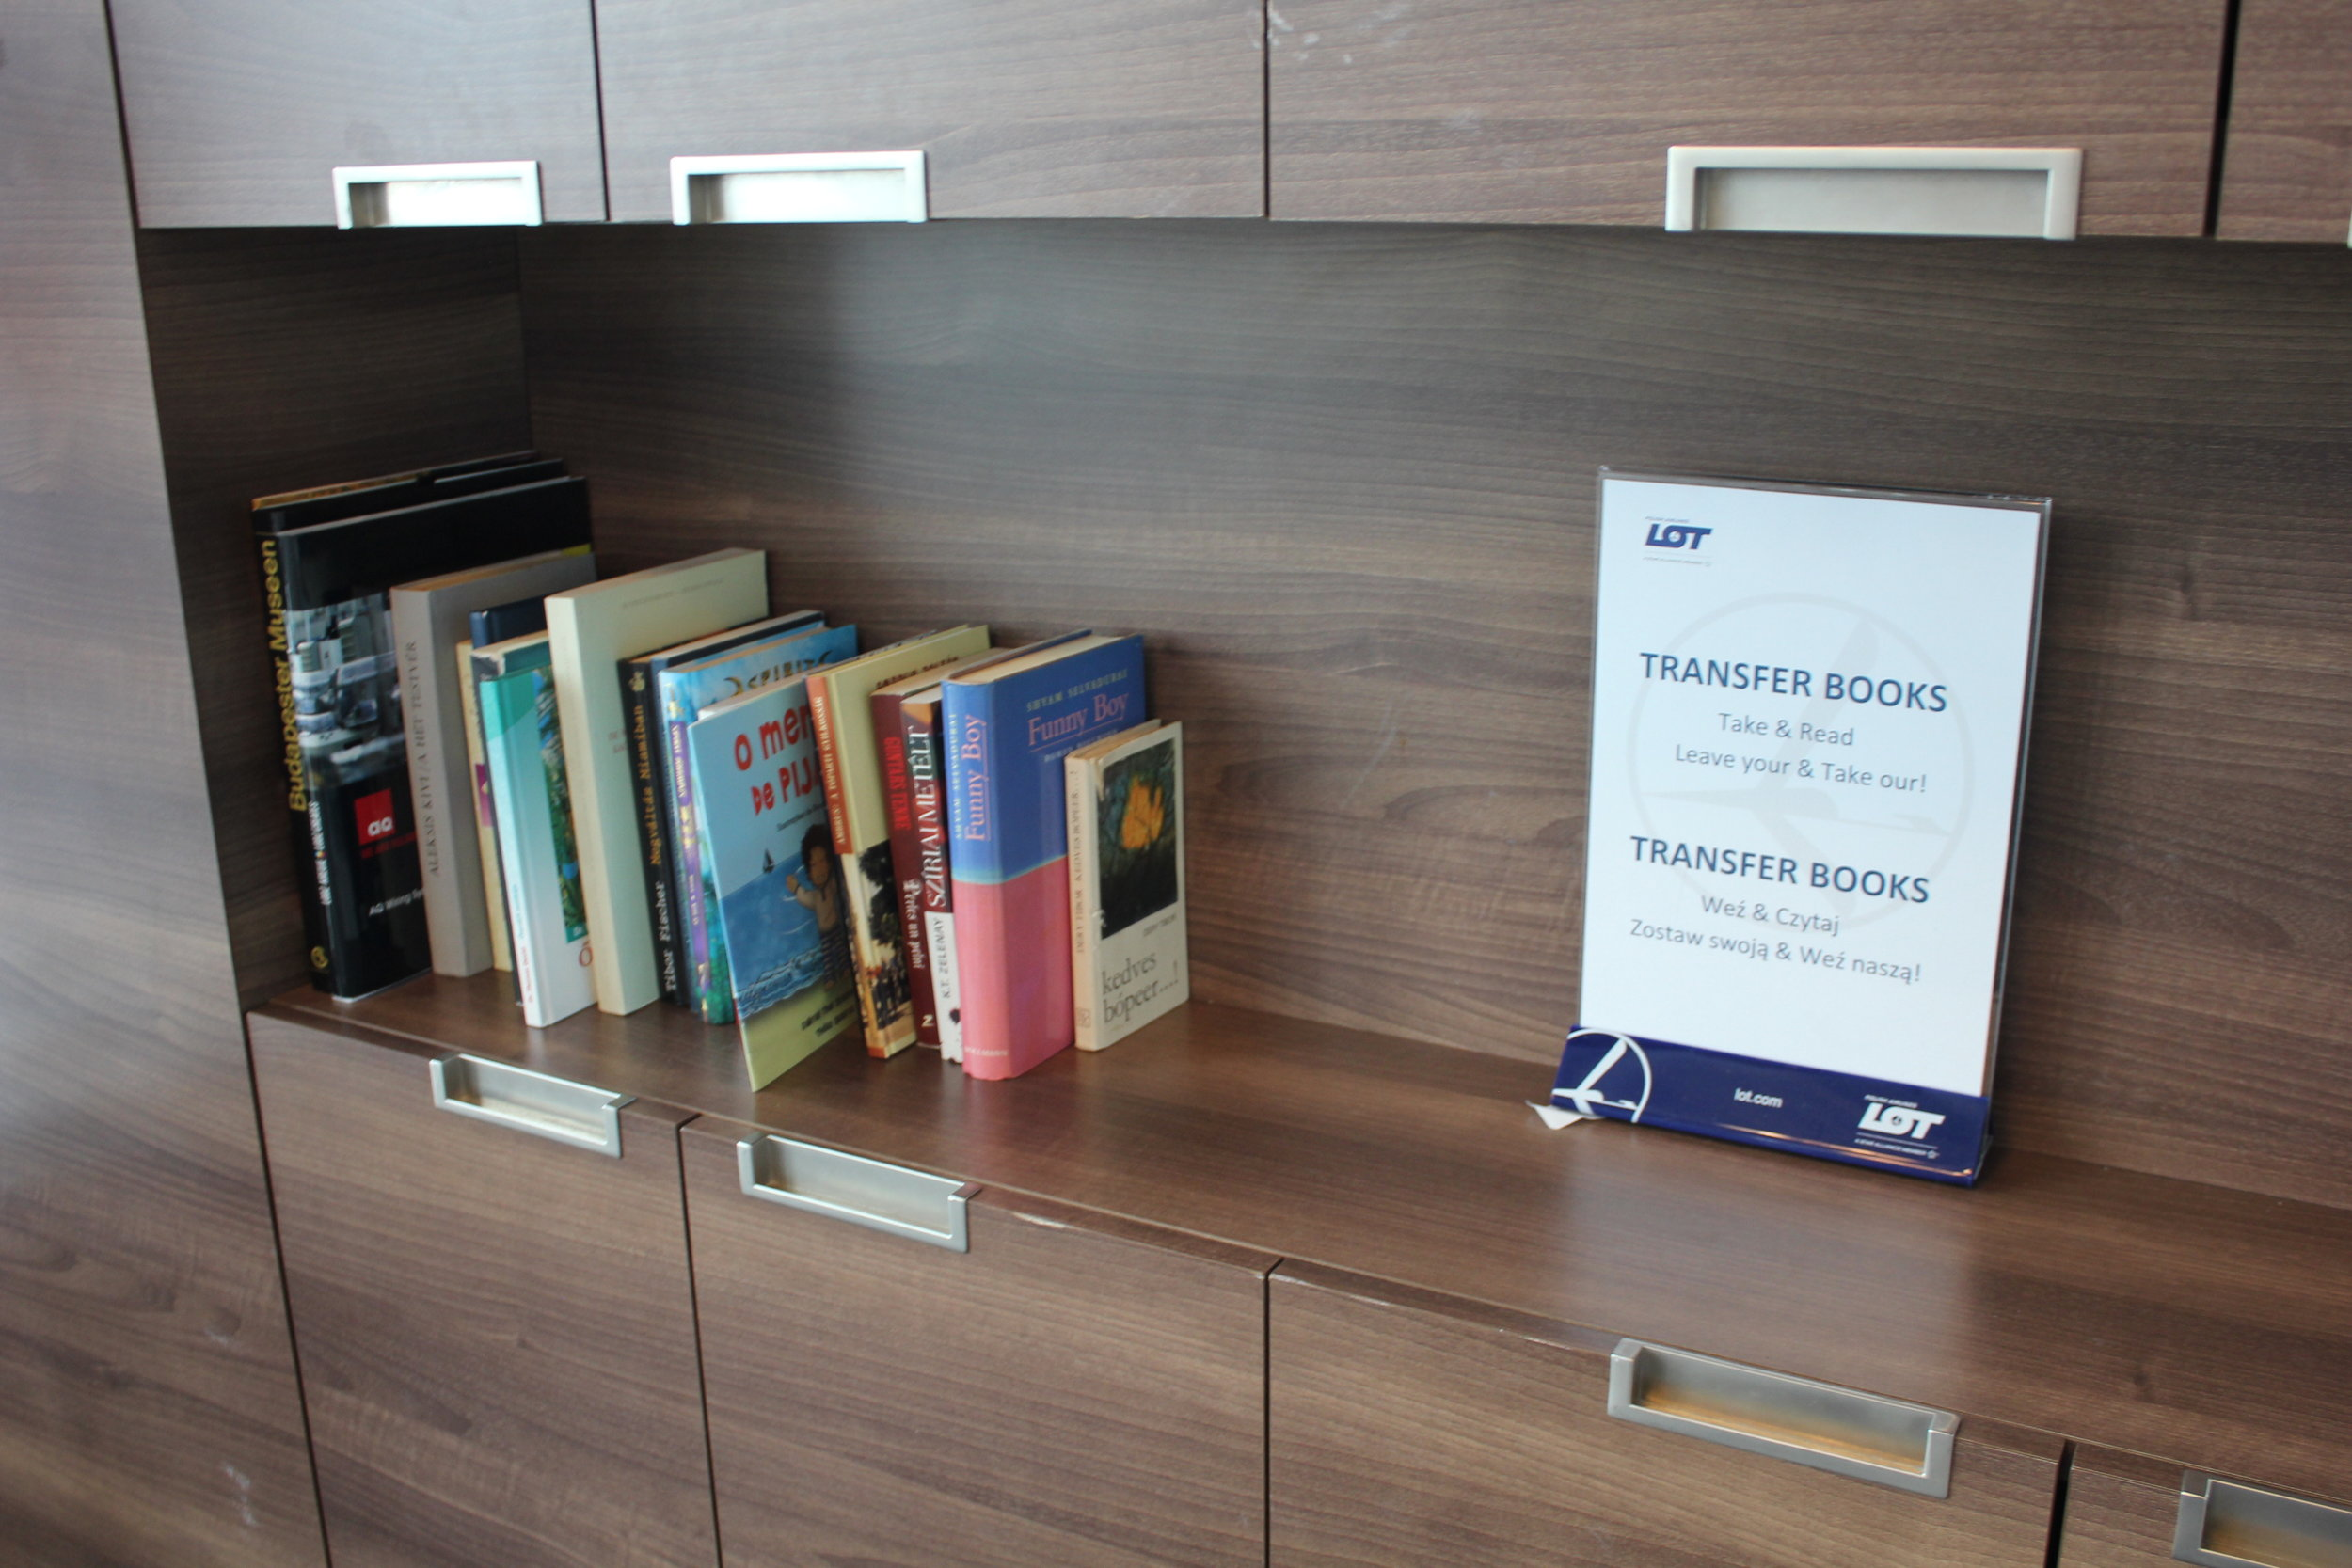 LOT Business Lounge Warsaw – Mini-library